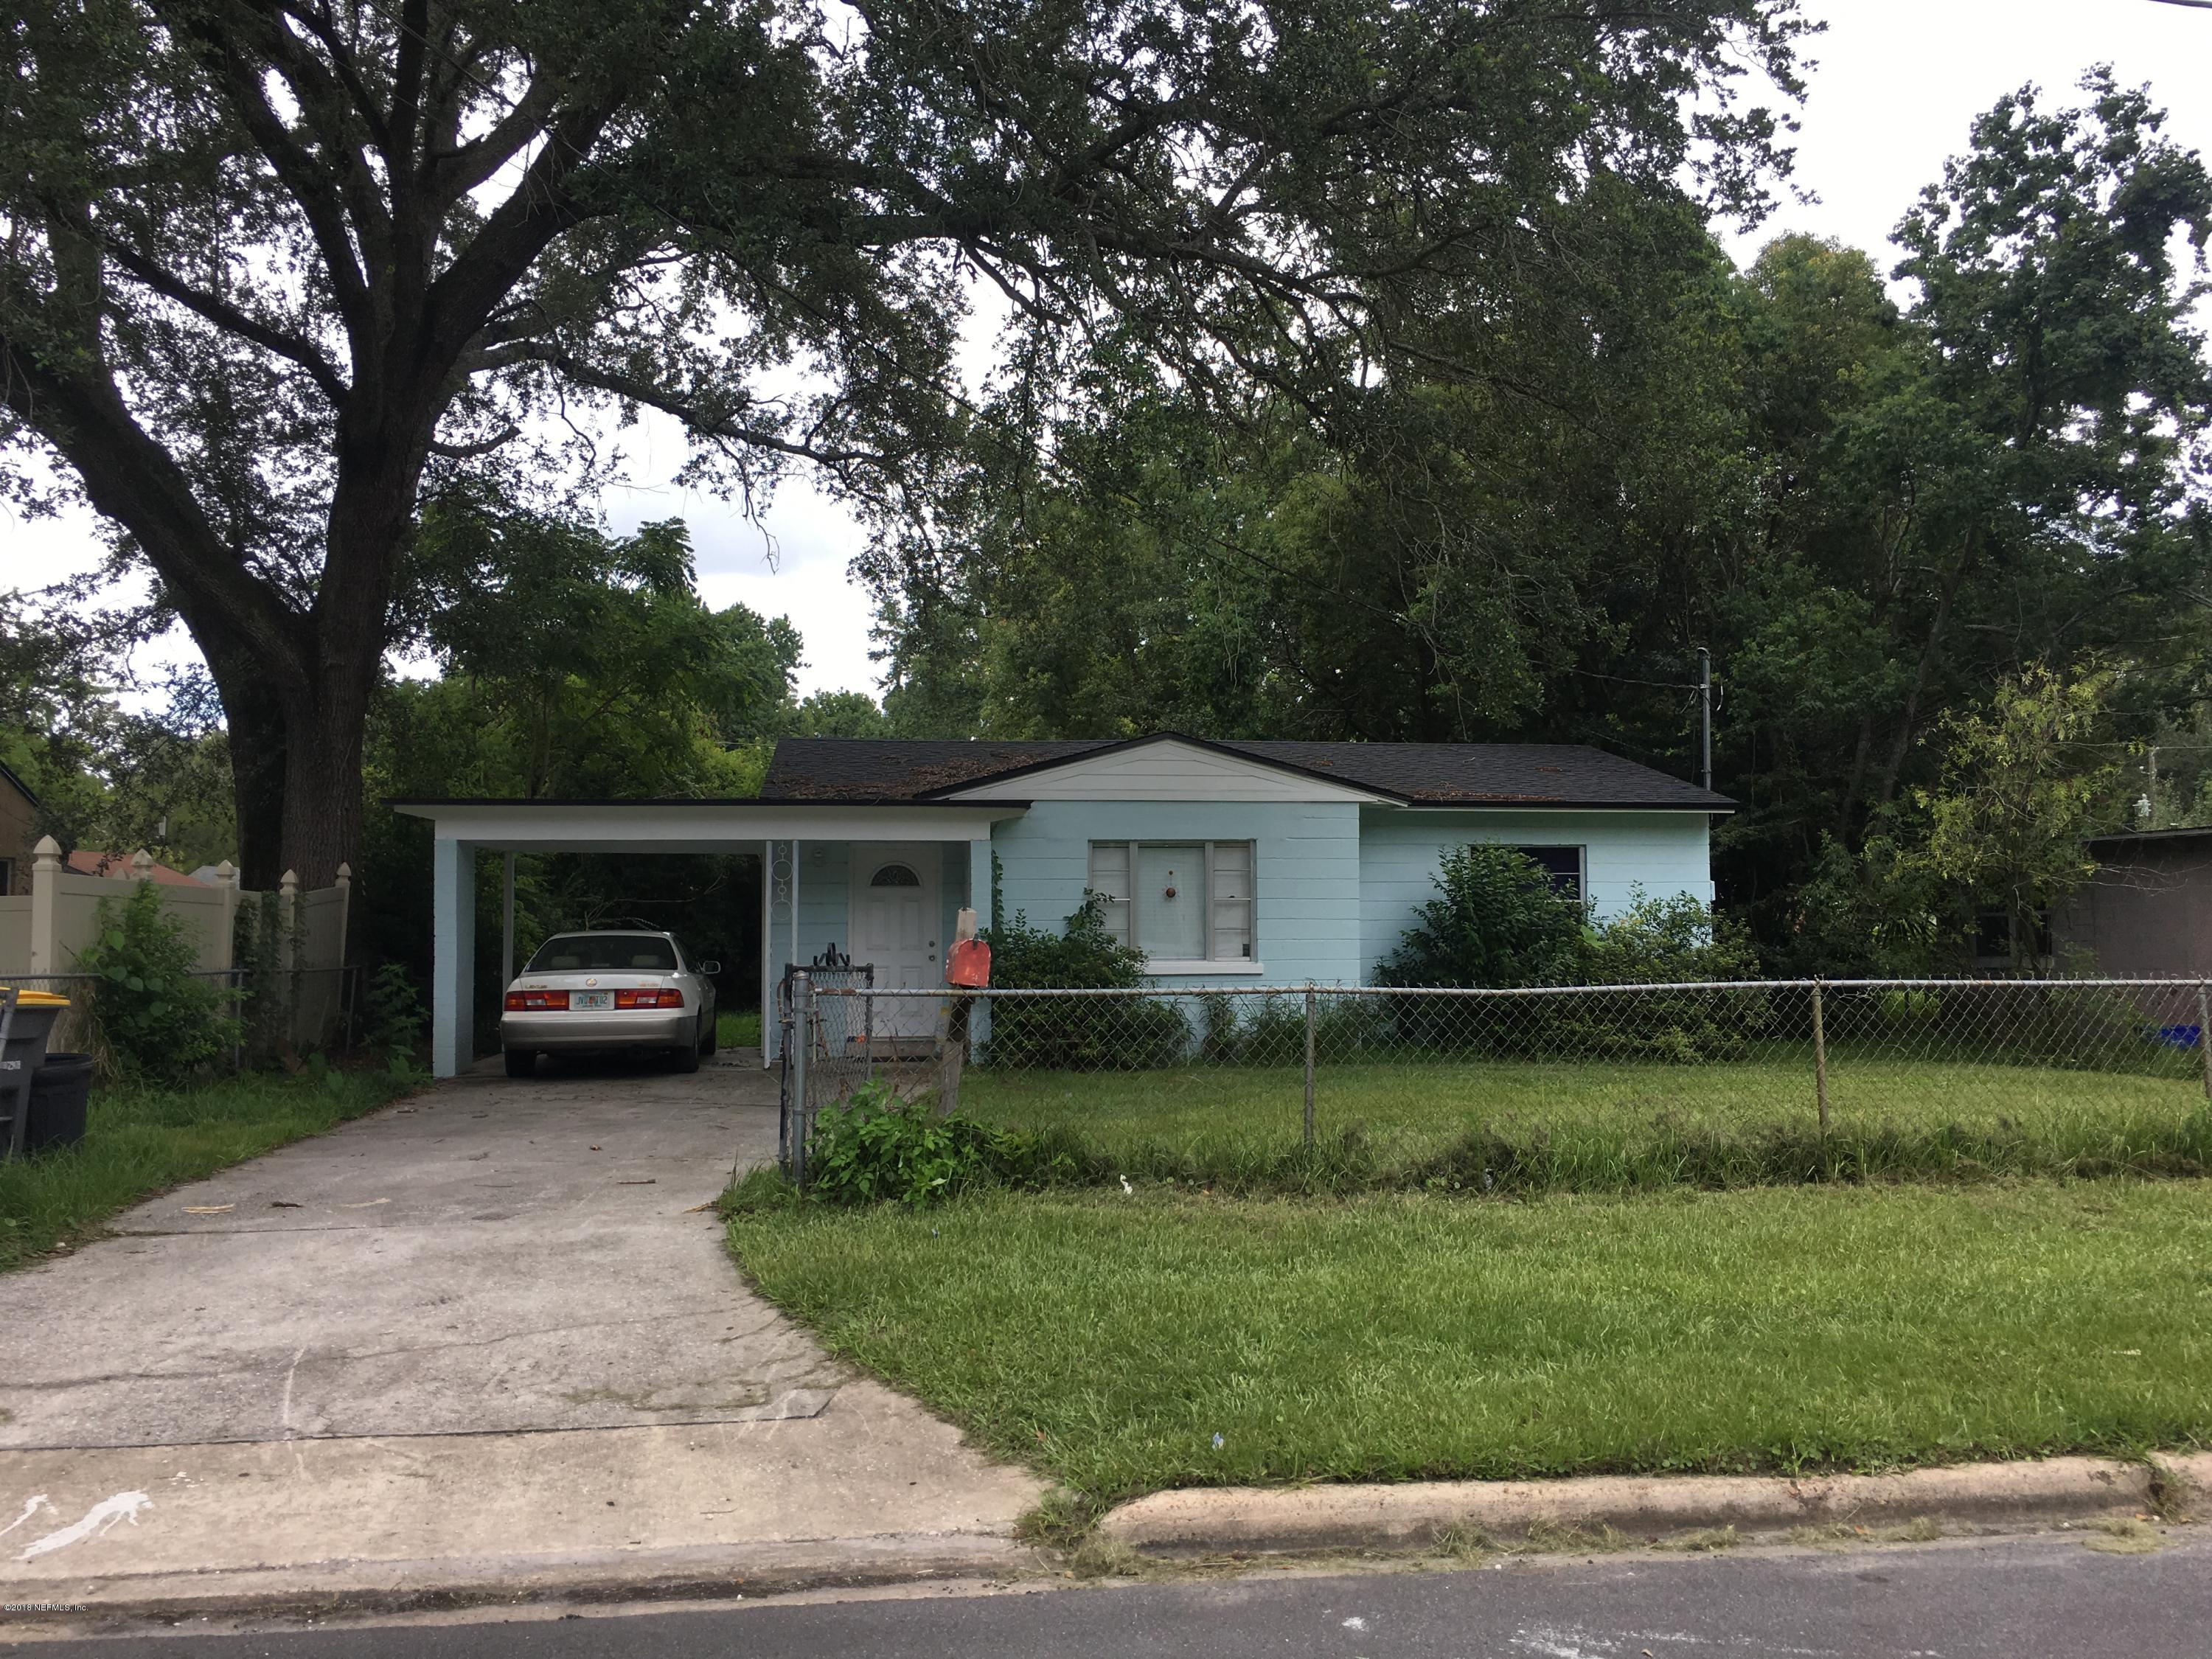 2839 DELLWOOD, JACKSONVILLE, FLORIDA 32205, 2 Bedrooms Bedrooms, ,1 BathroomBathrooms,Single family,For sale,DELLWOOD,945080